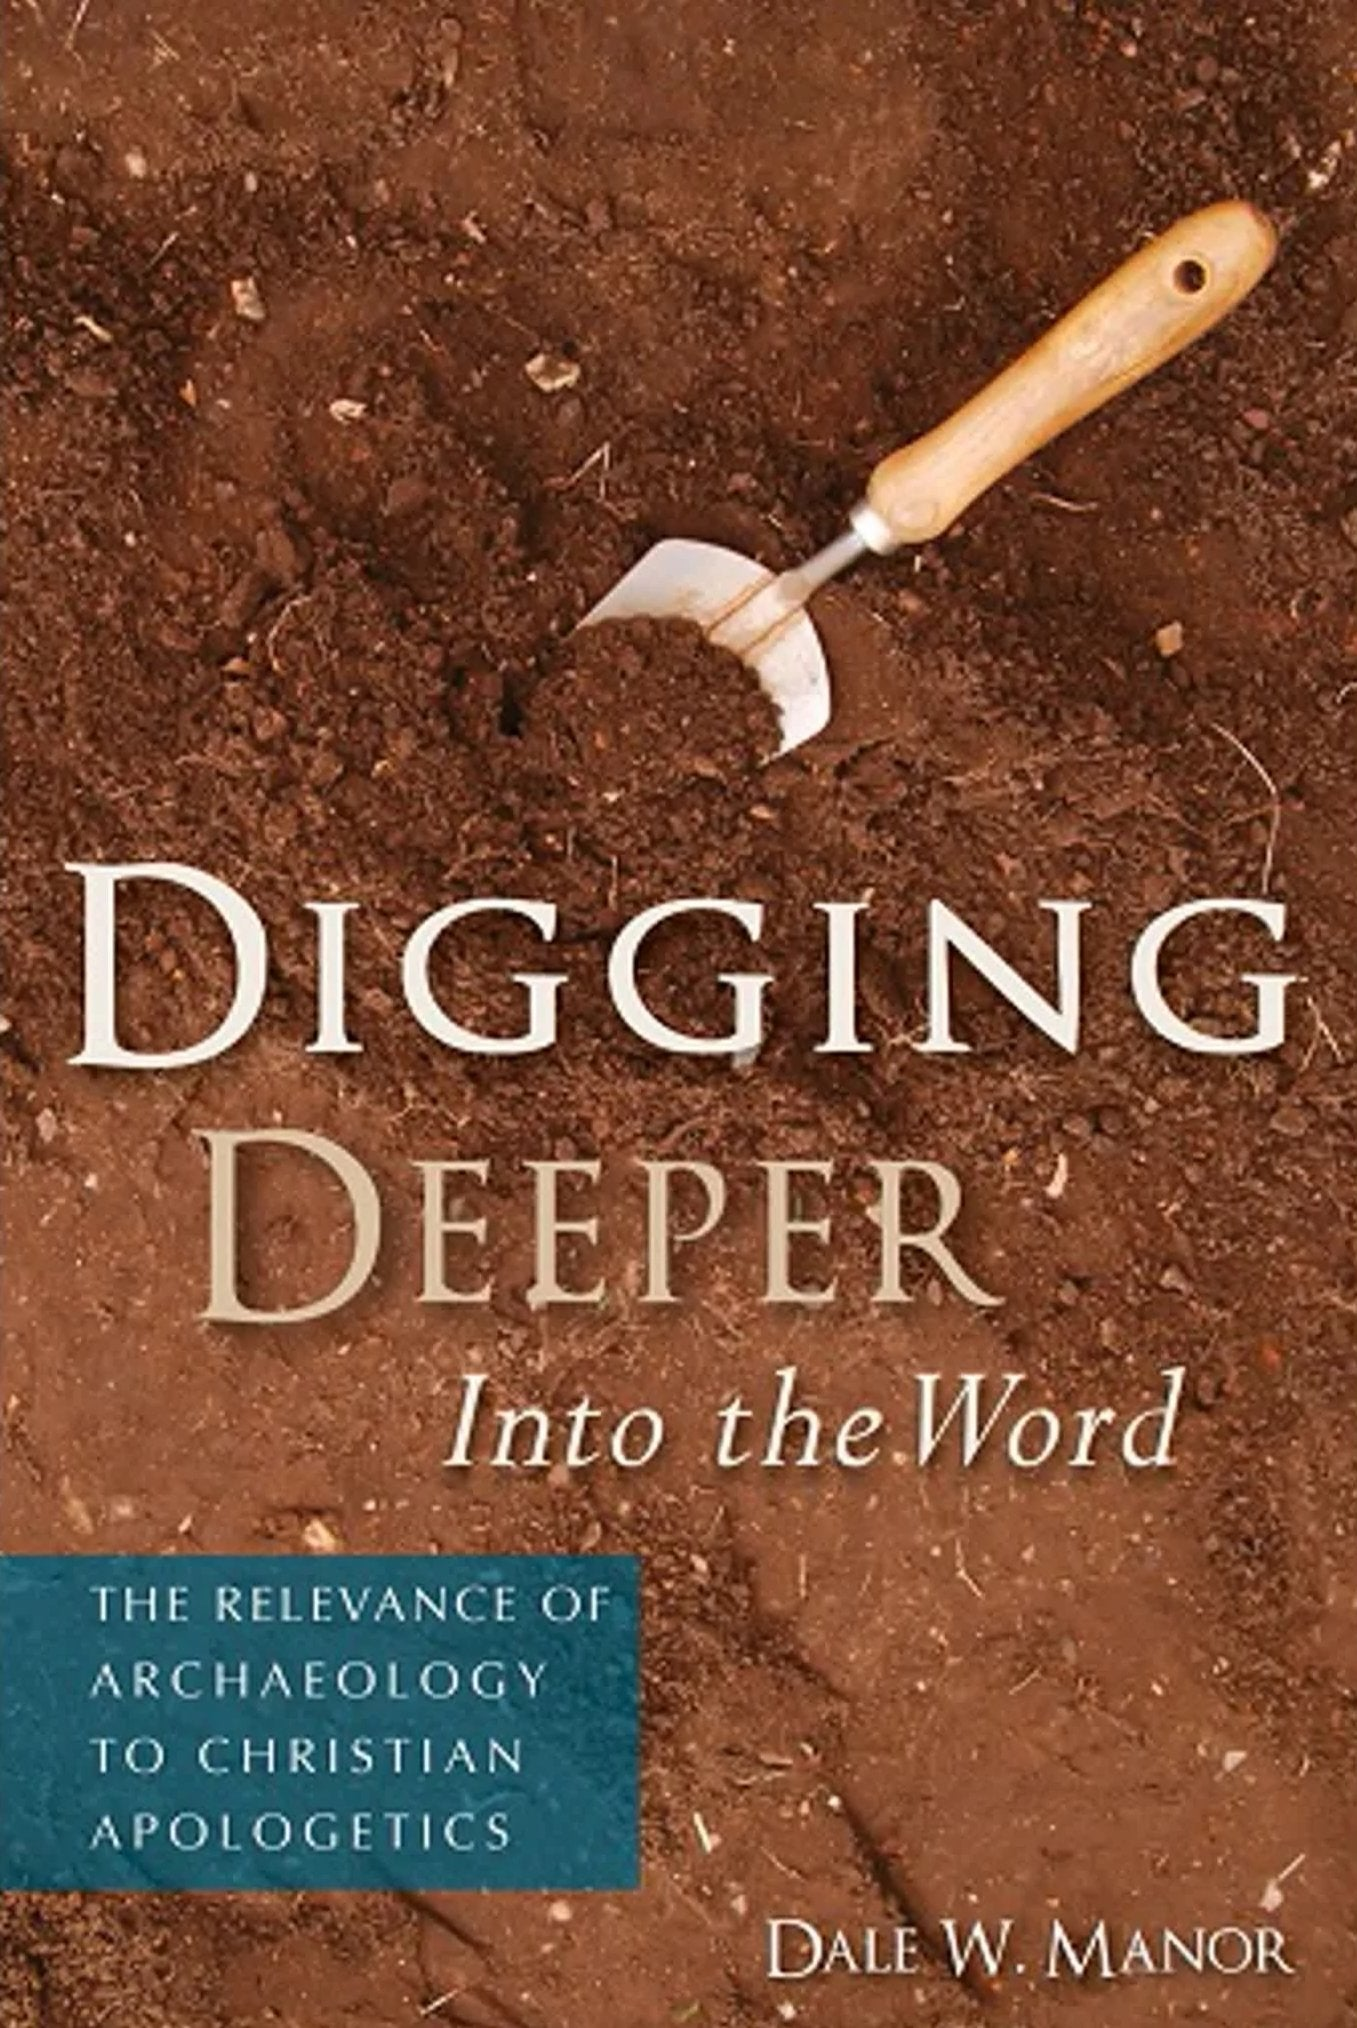 Digging Deeper into the Word: The Relevance of Archaeology to Christian Apologetics: NEW!